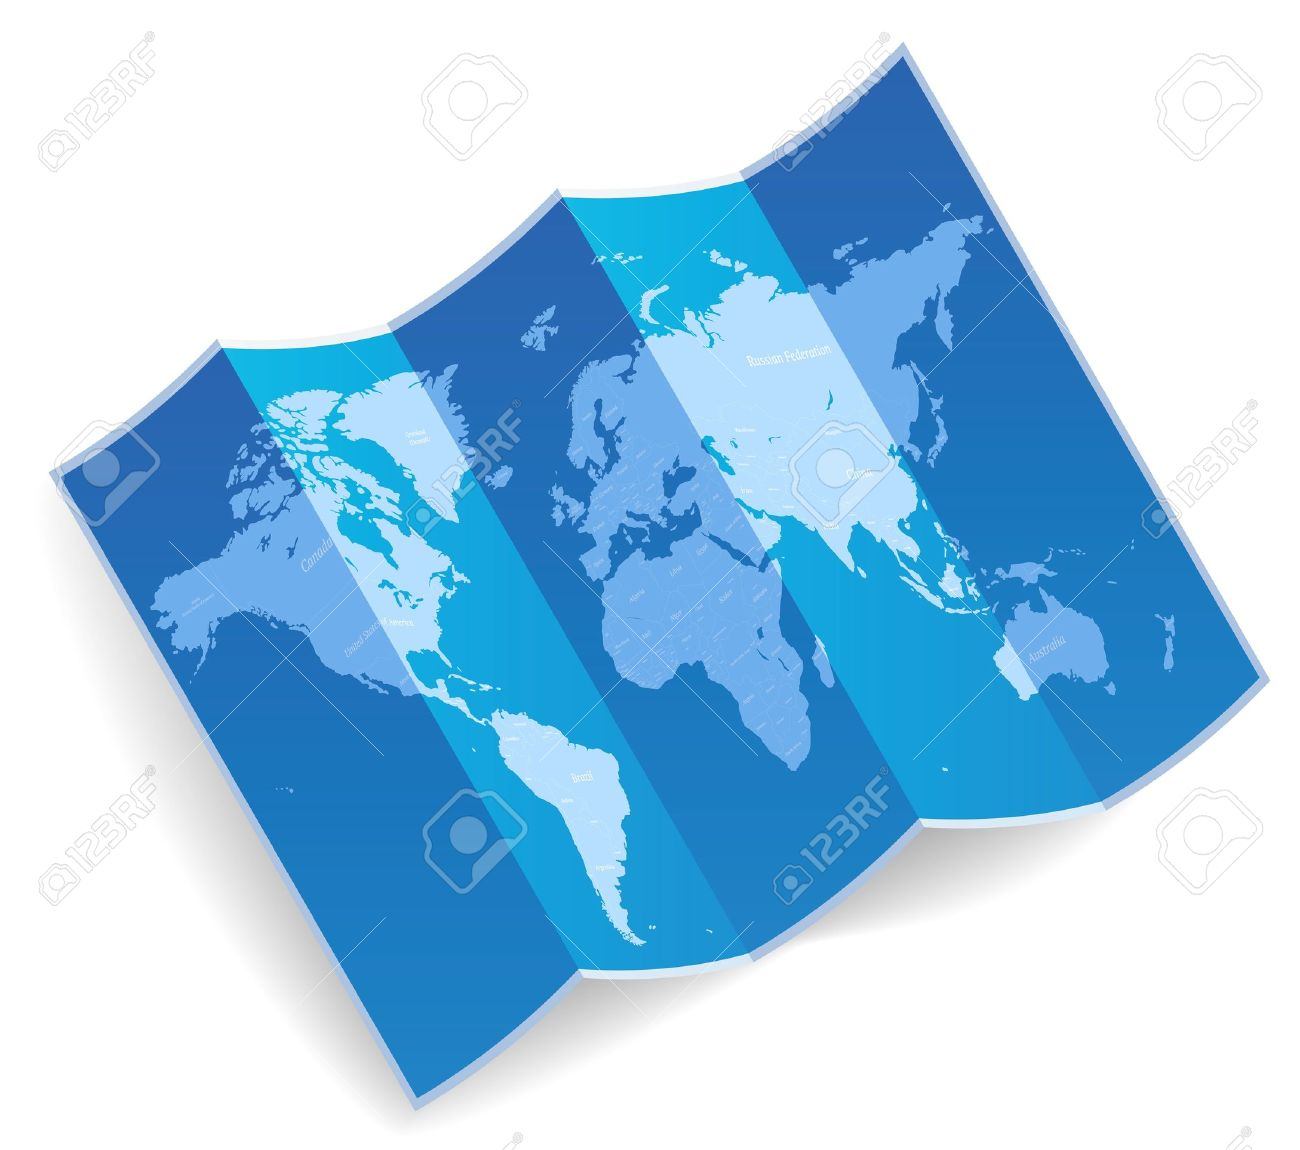 Blue folded world map vector illustration royalty free cliparts blue folded world map vector illustration stock vector 15304640 gumiabroncs Images